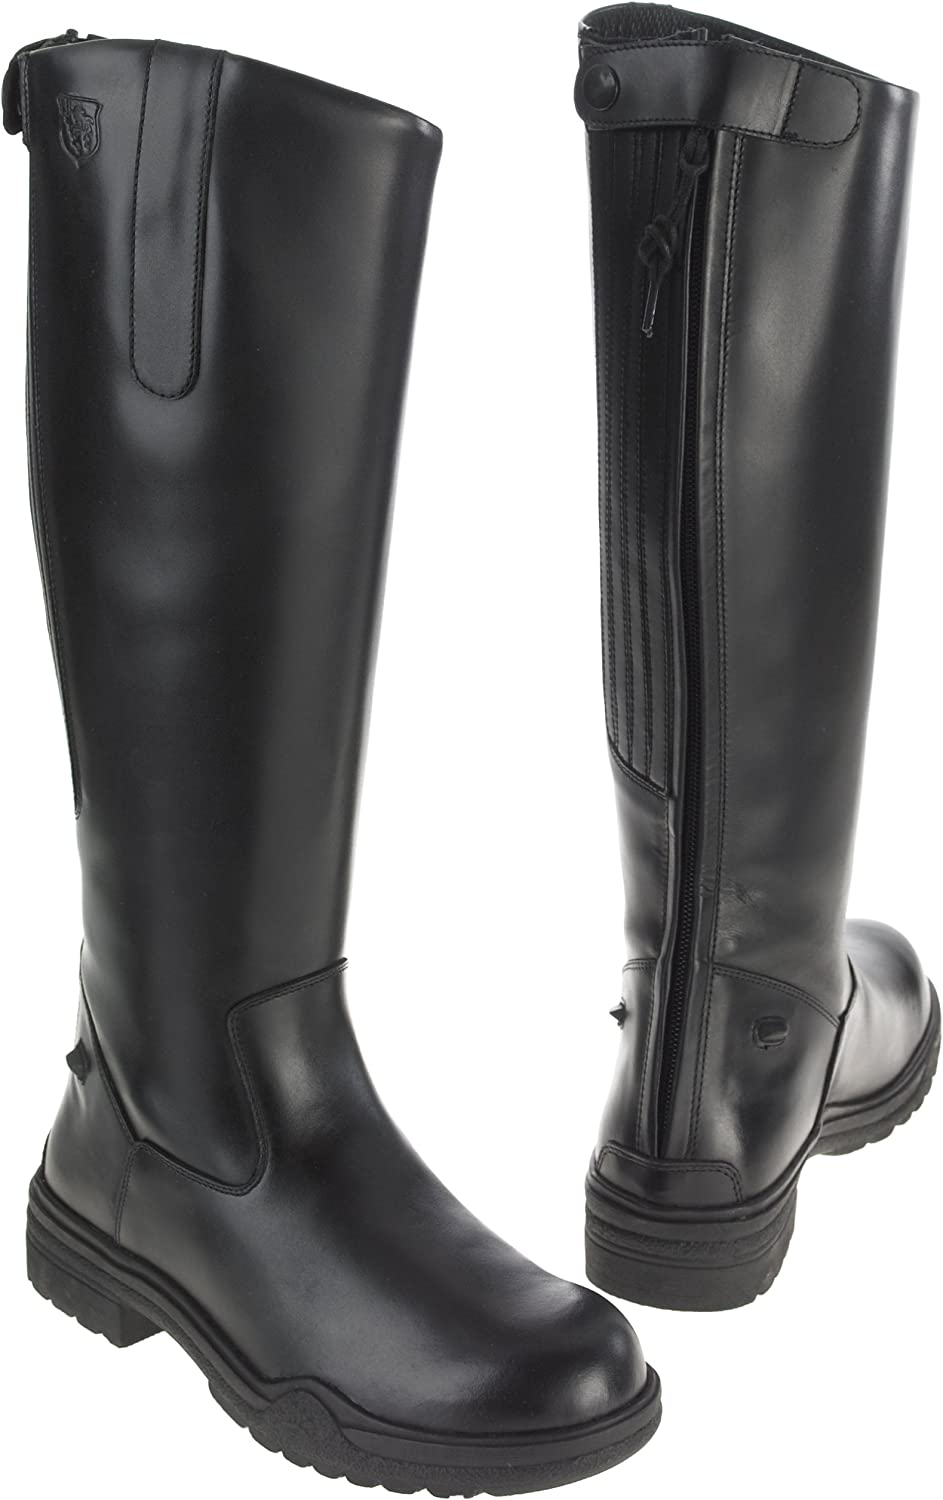 Just Togs Chatham Sporty Riding Boots